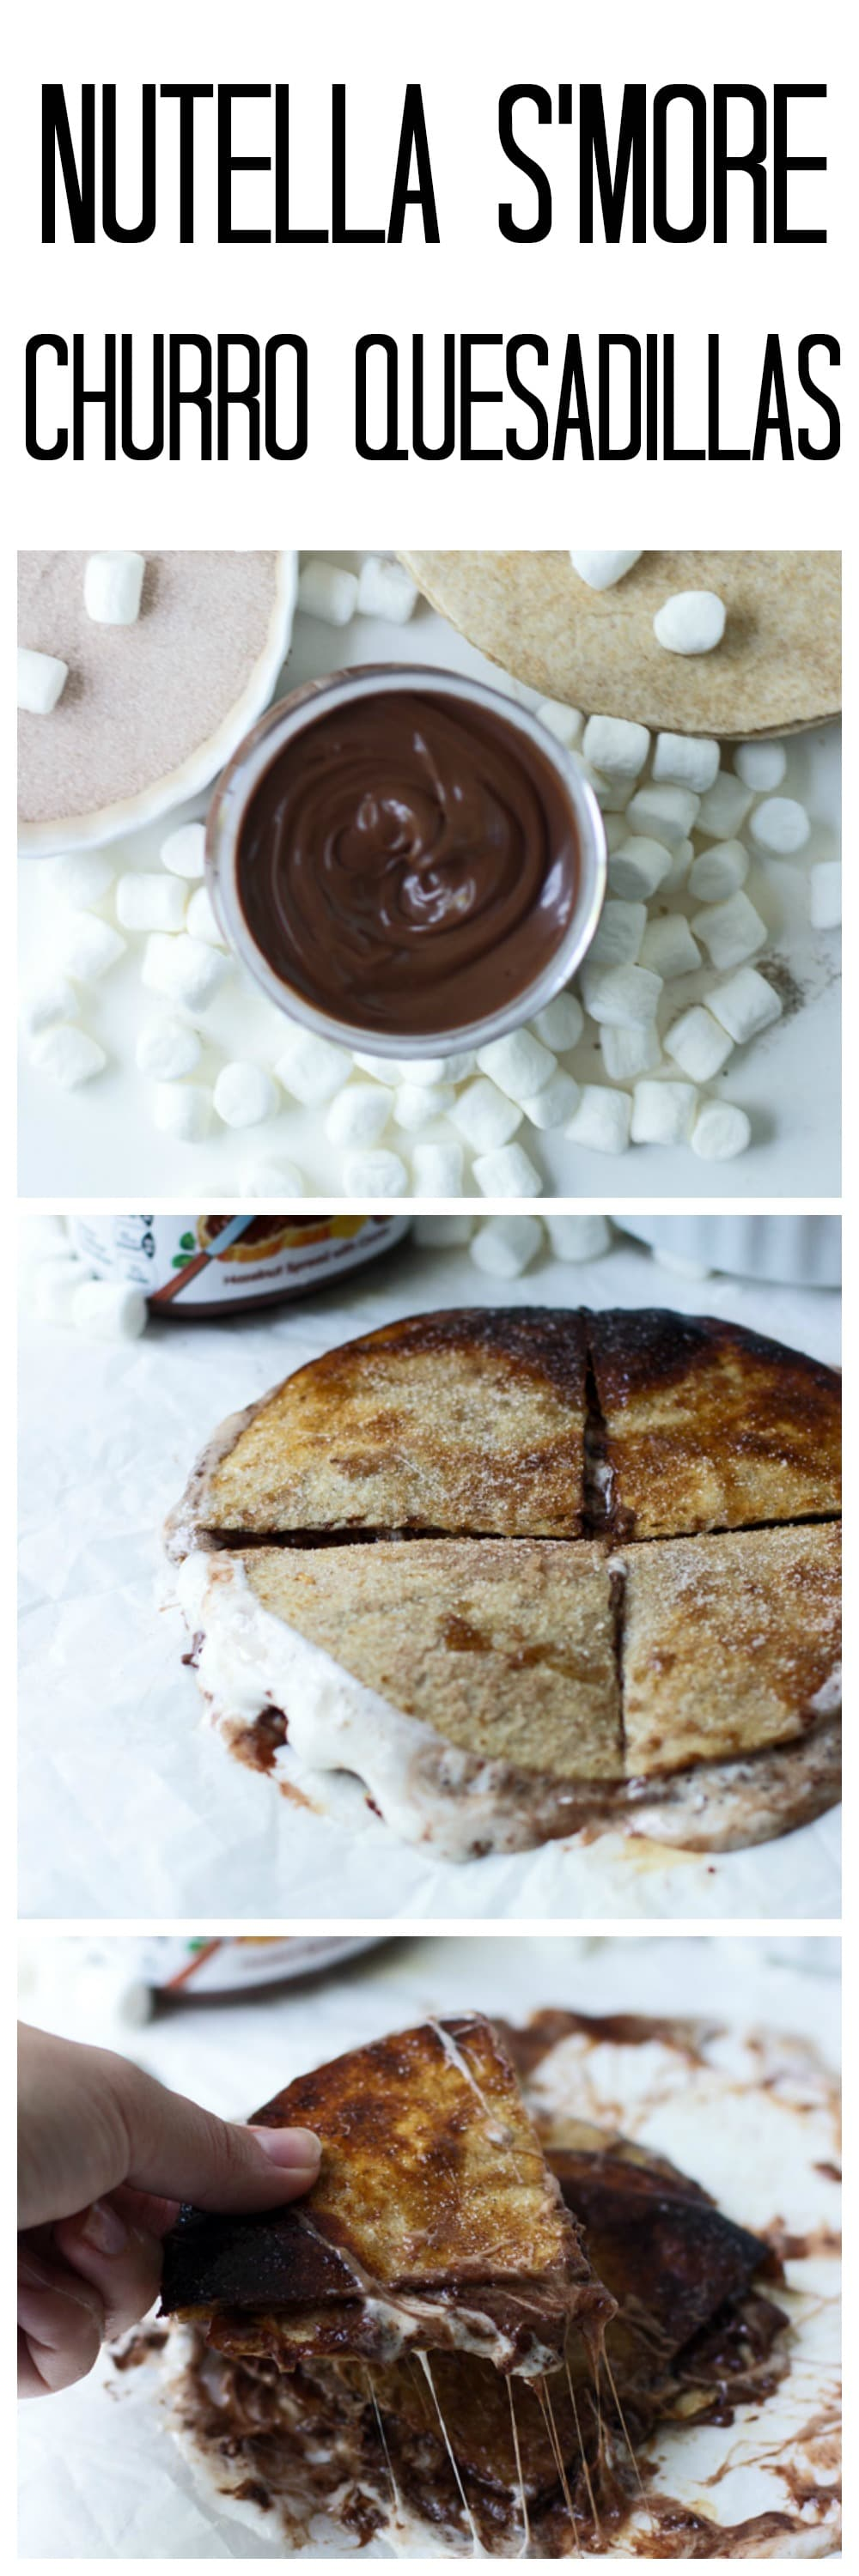 Nutella S'more Churro Quesadilla